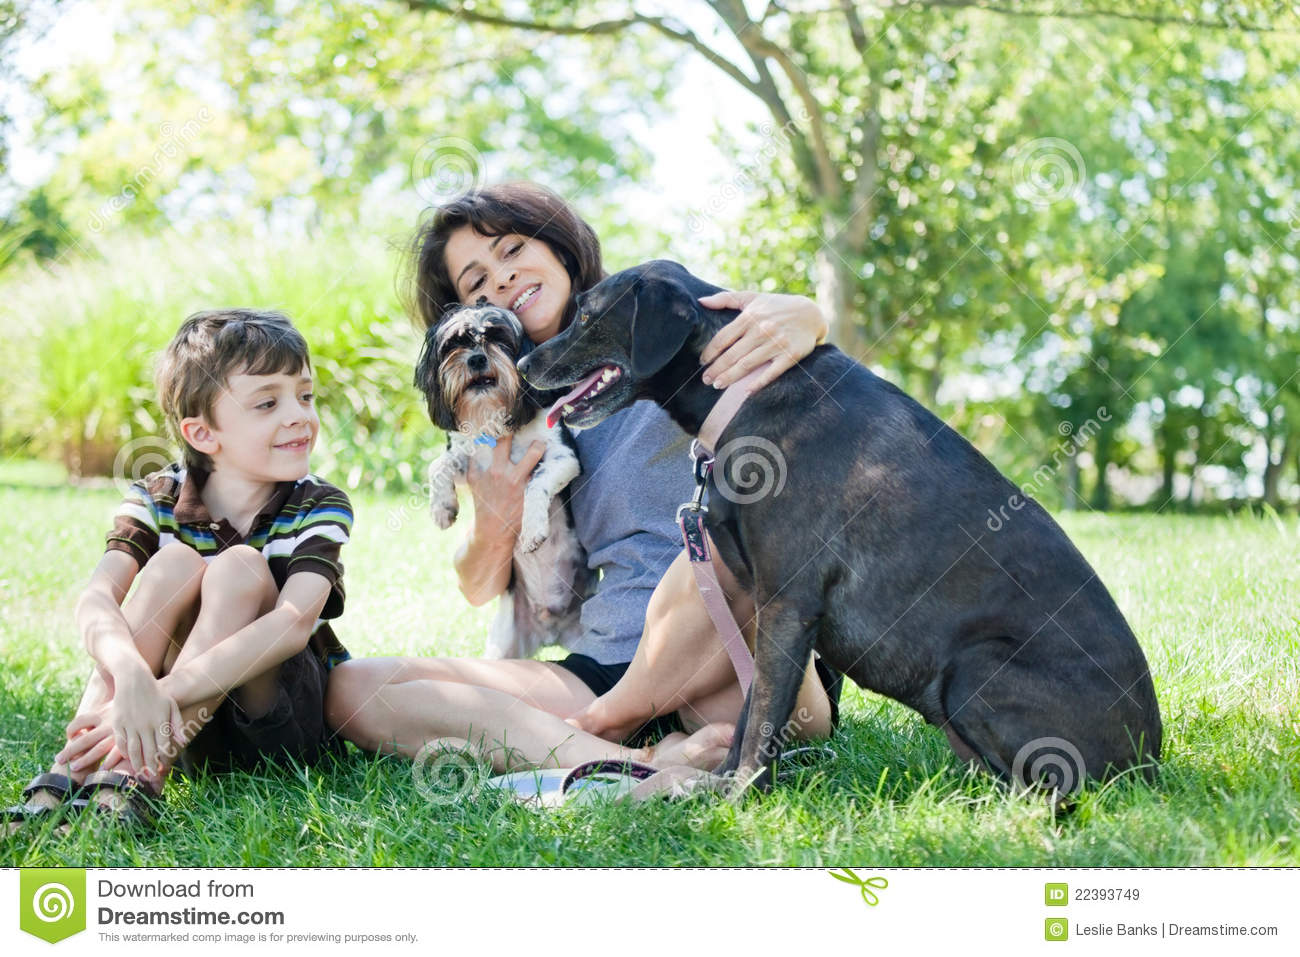 Woman and child with dogs